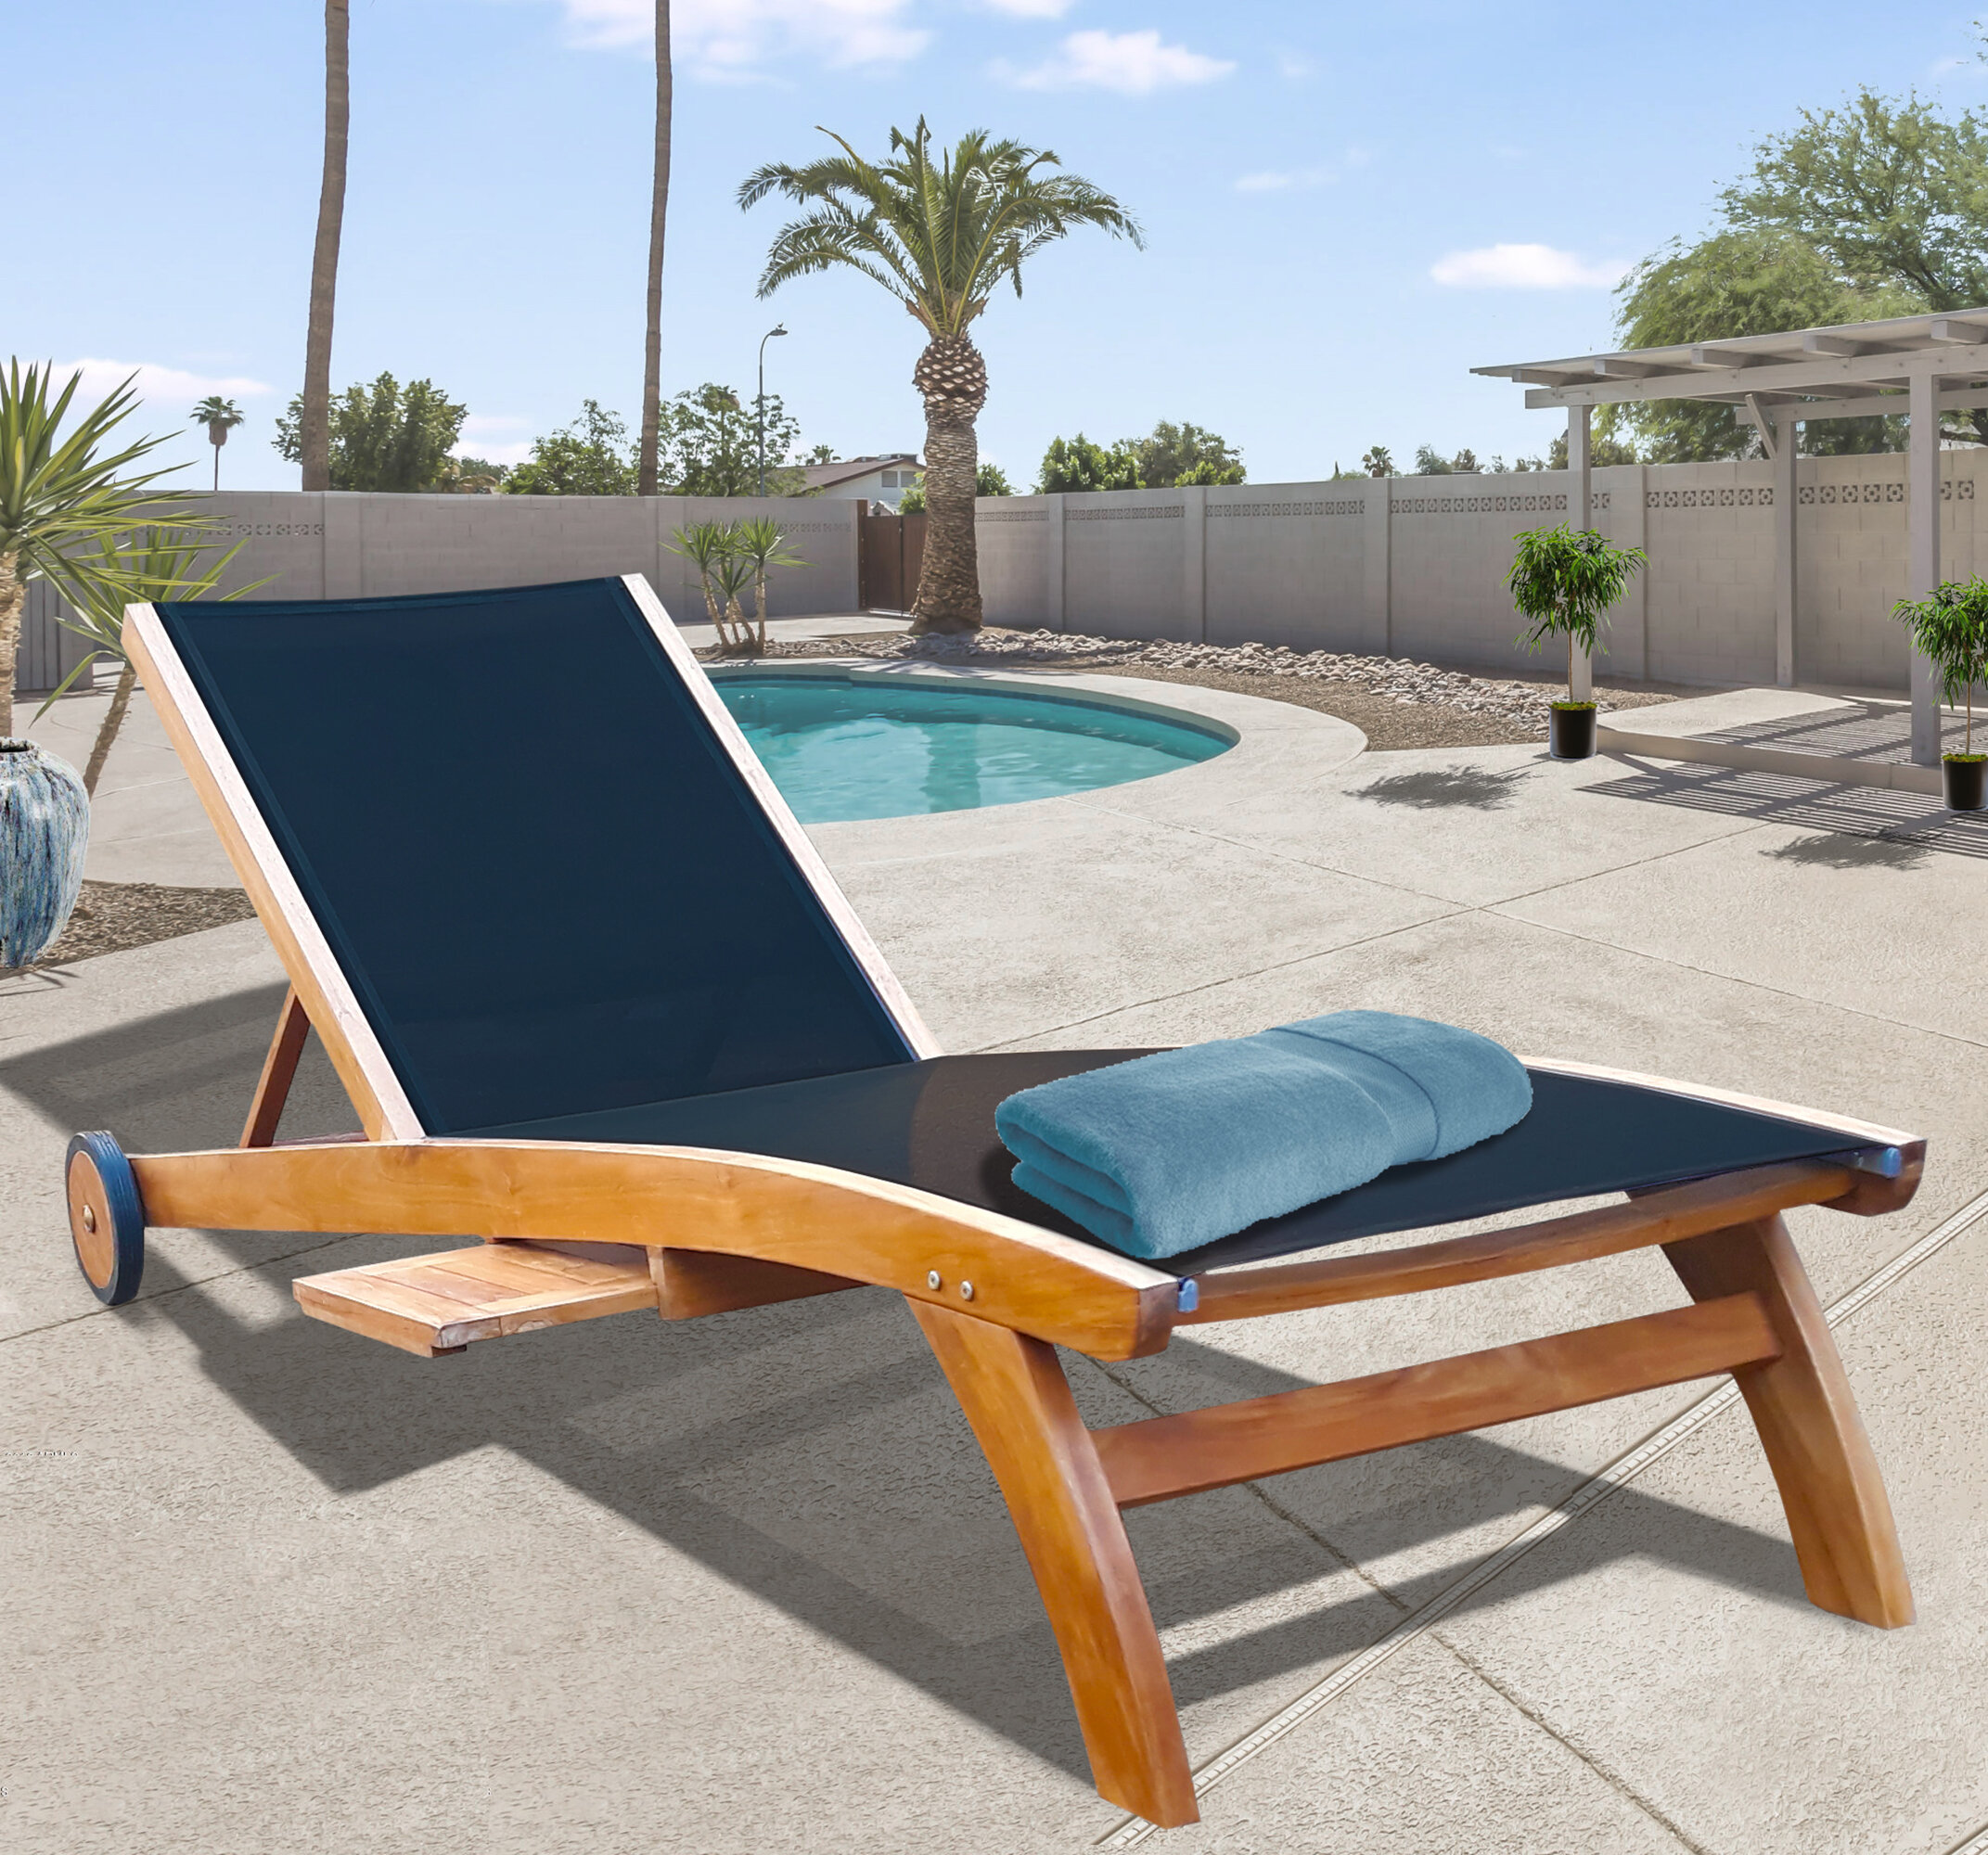 Chaise Lounge Set Teak Outdoor Chaise Lounge Chairs You Ll Love In 2021 Wayfair